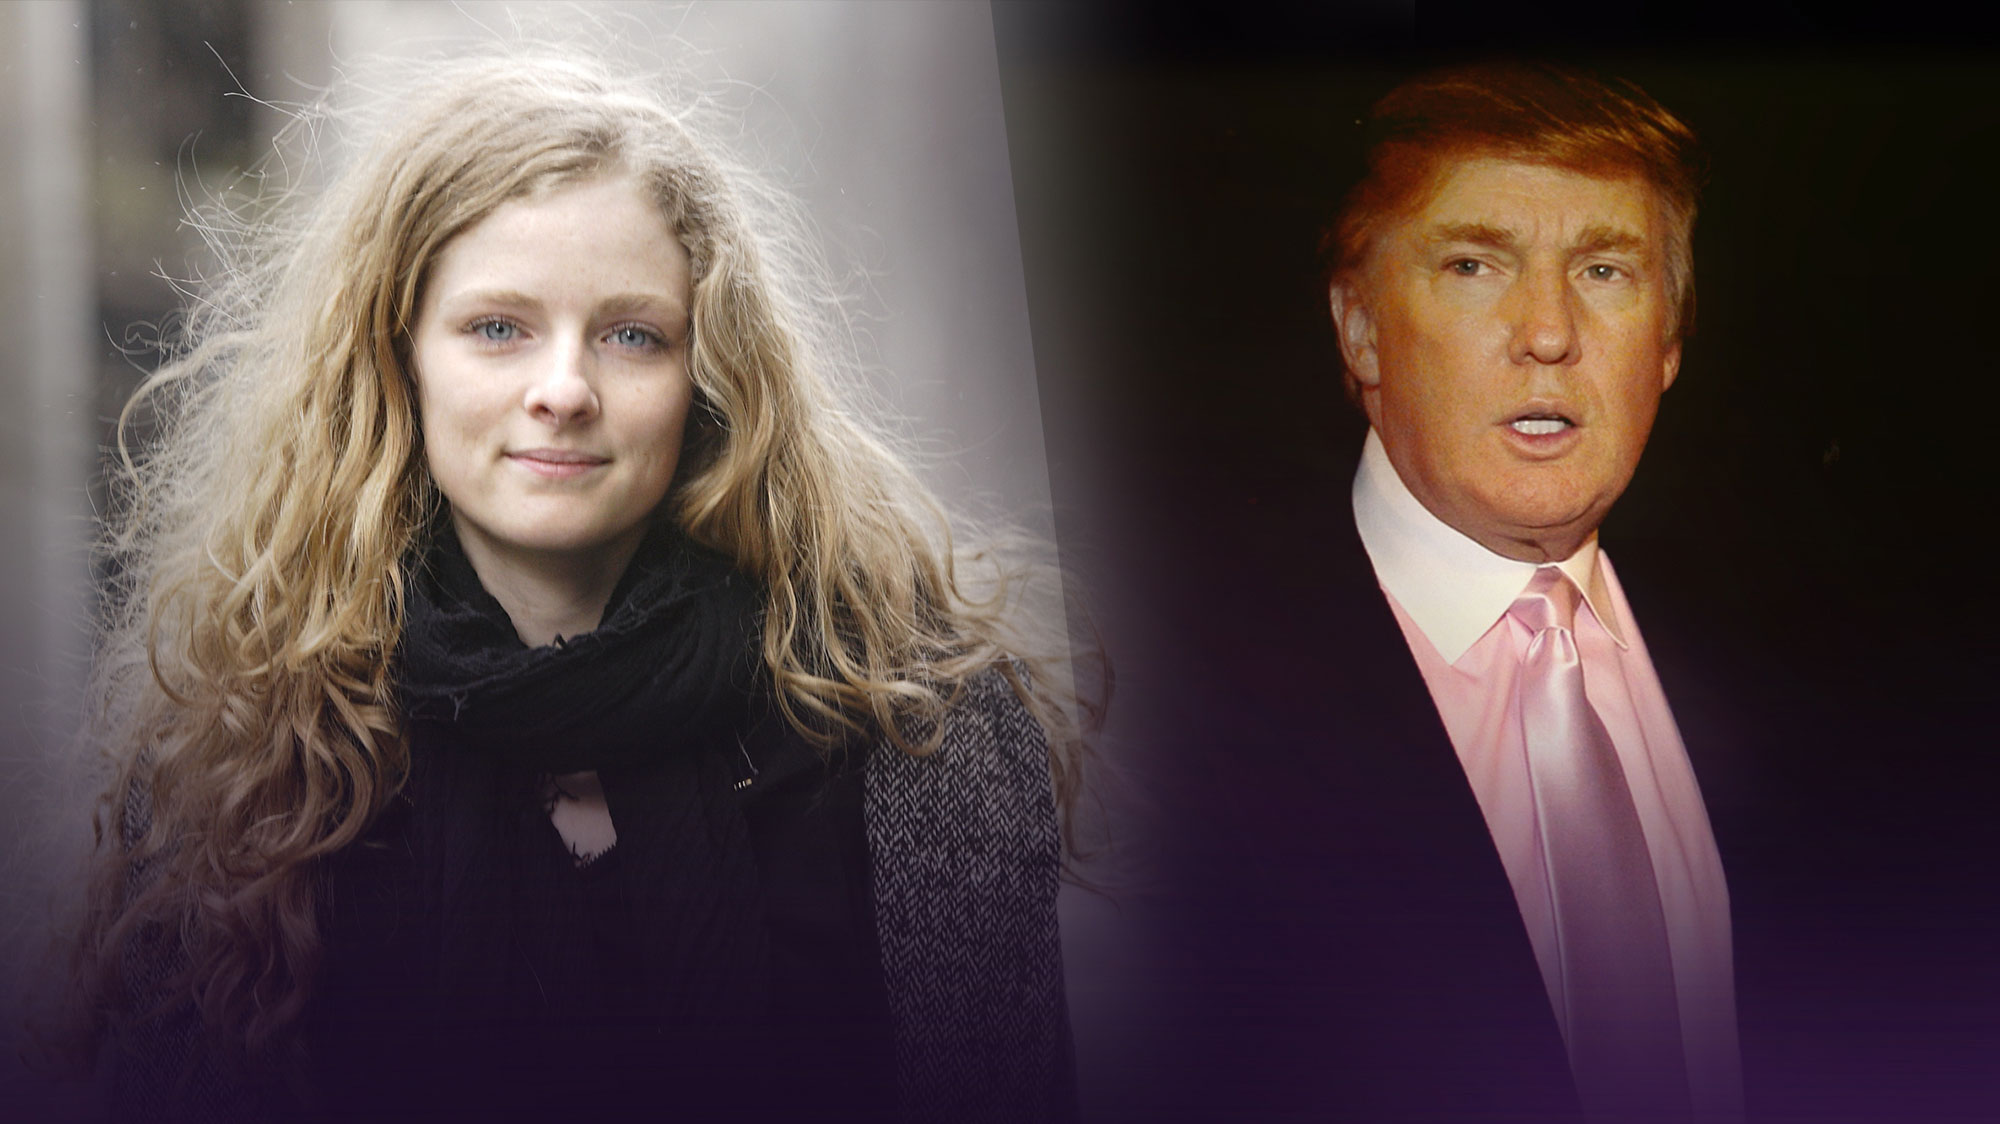 Former Models for Donald Trump's Agency Say They Violated